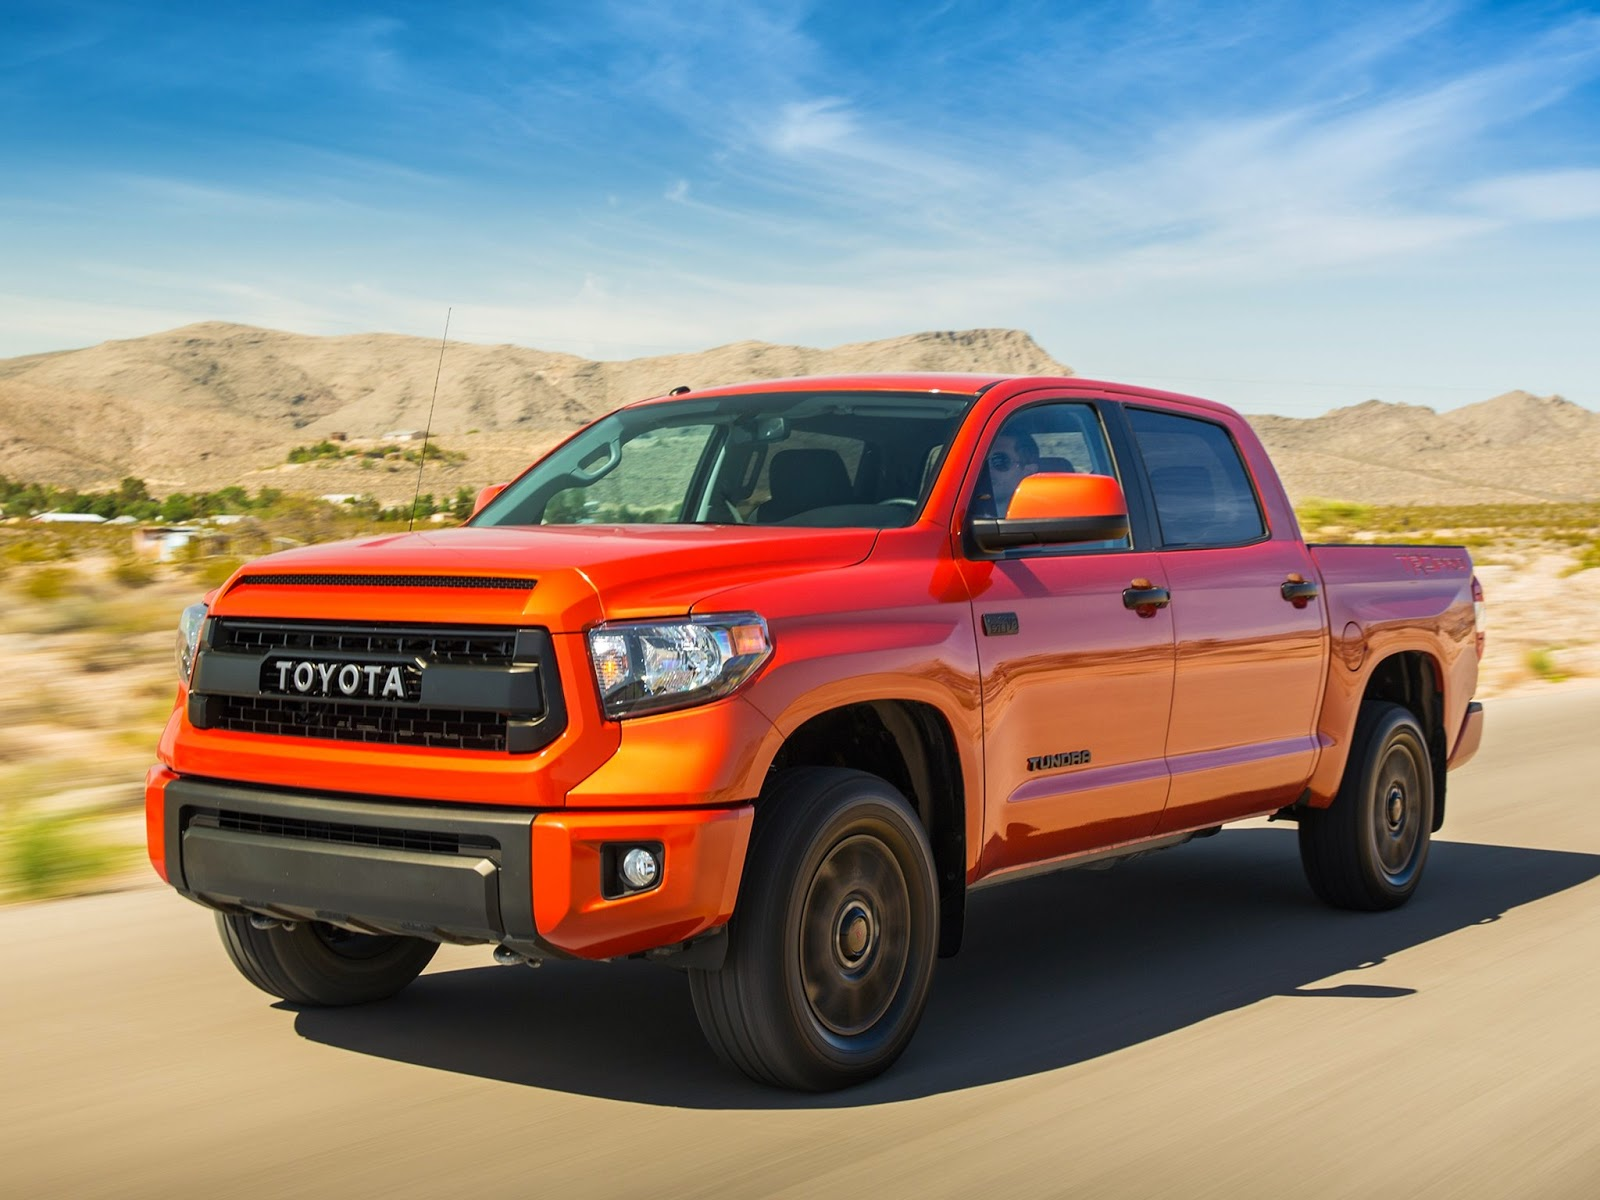 2015 toyota tundra trd pro car review and modification. Black Bedroom Furniture Sets. Home Design Ideas